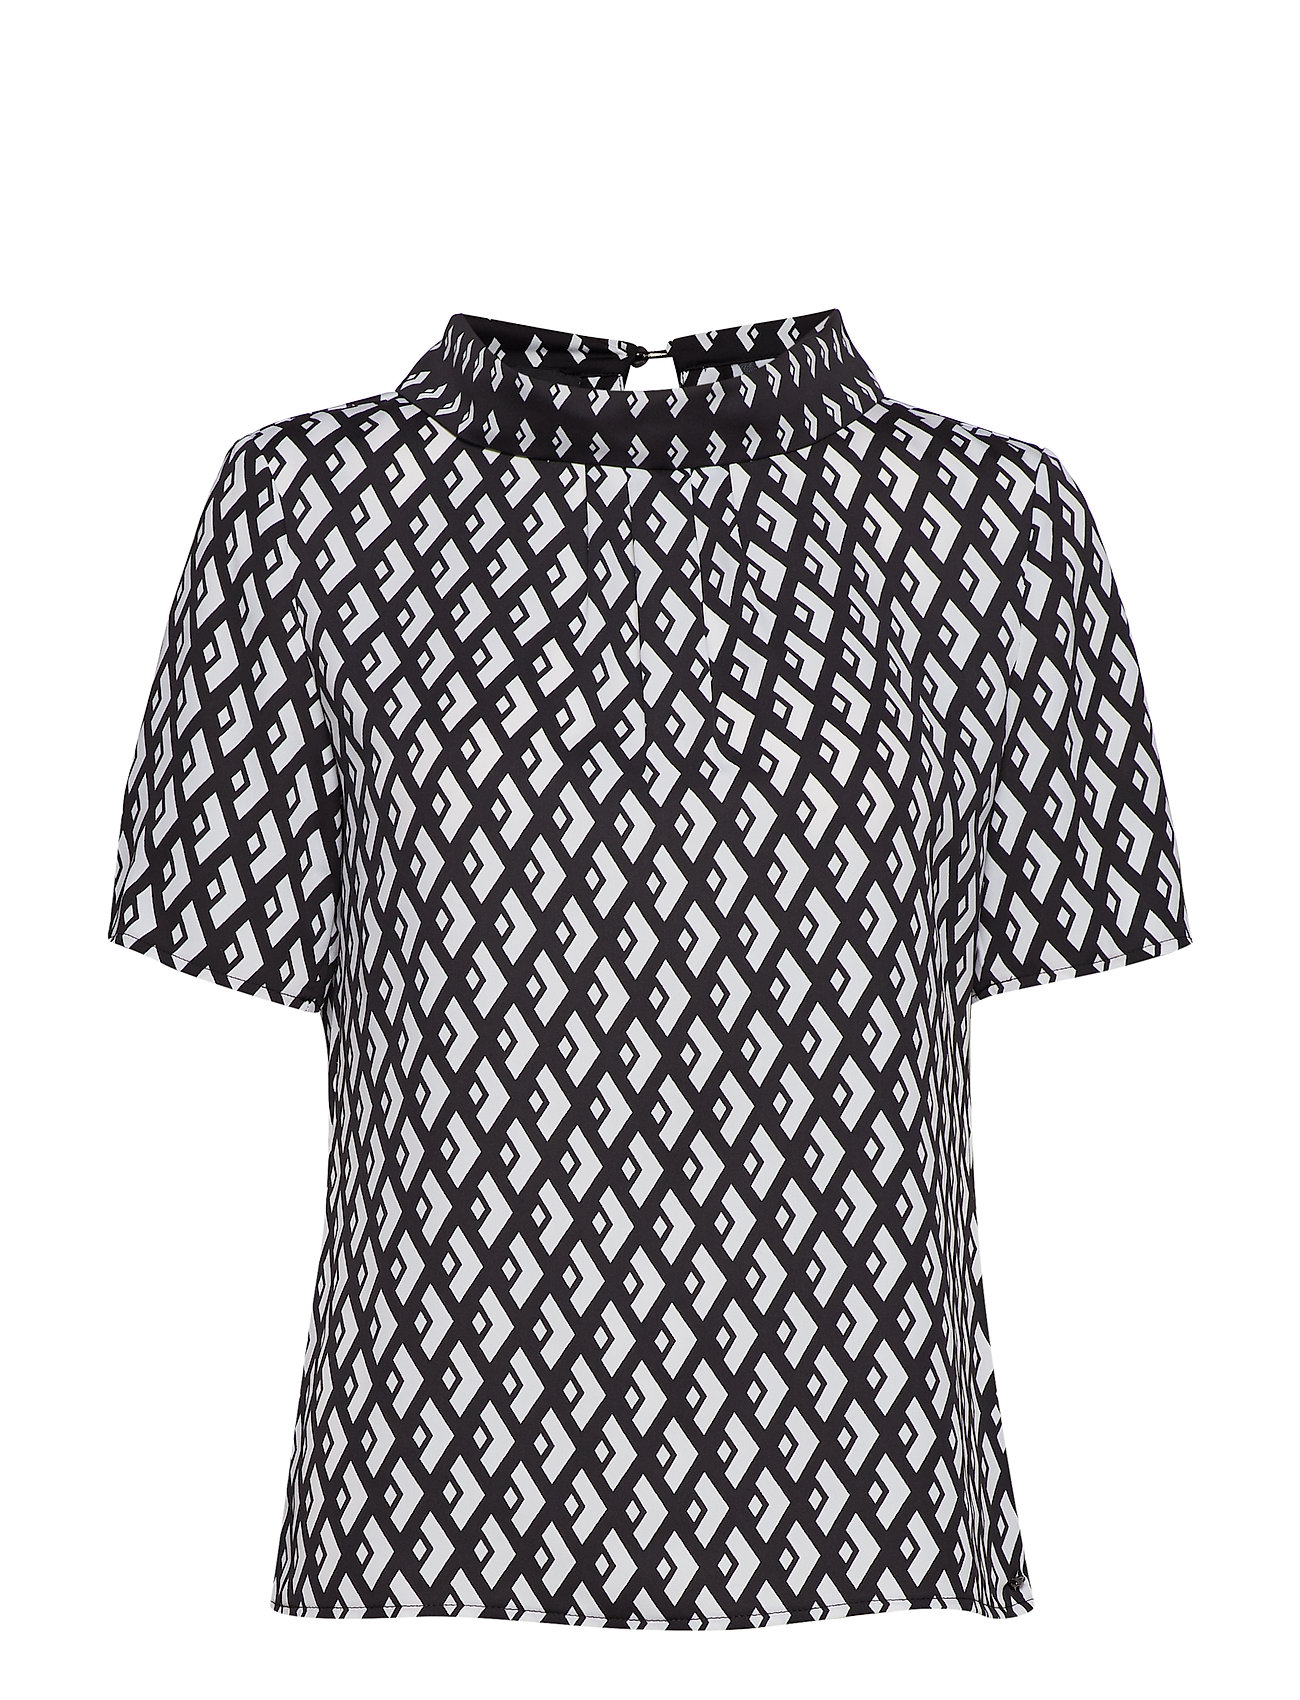 Taifun BLOUSE SHORT-SLEEVE - BLACK STRIPED